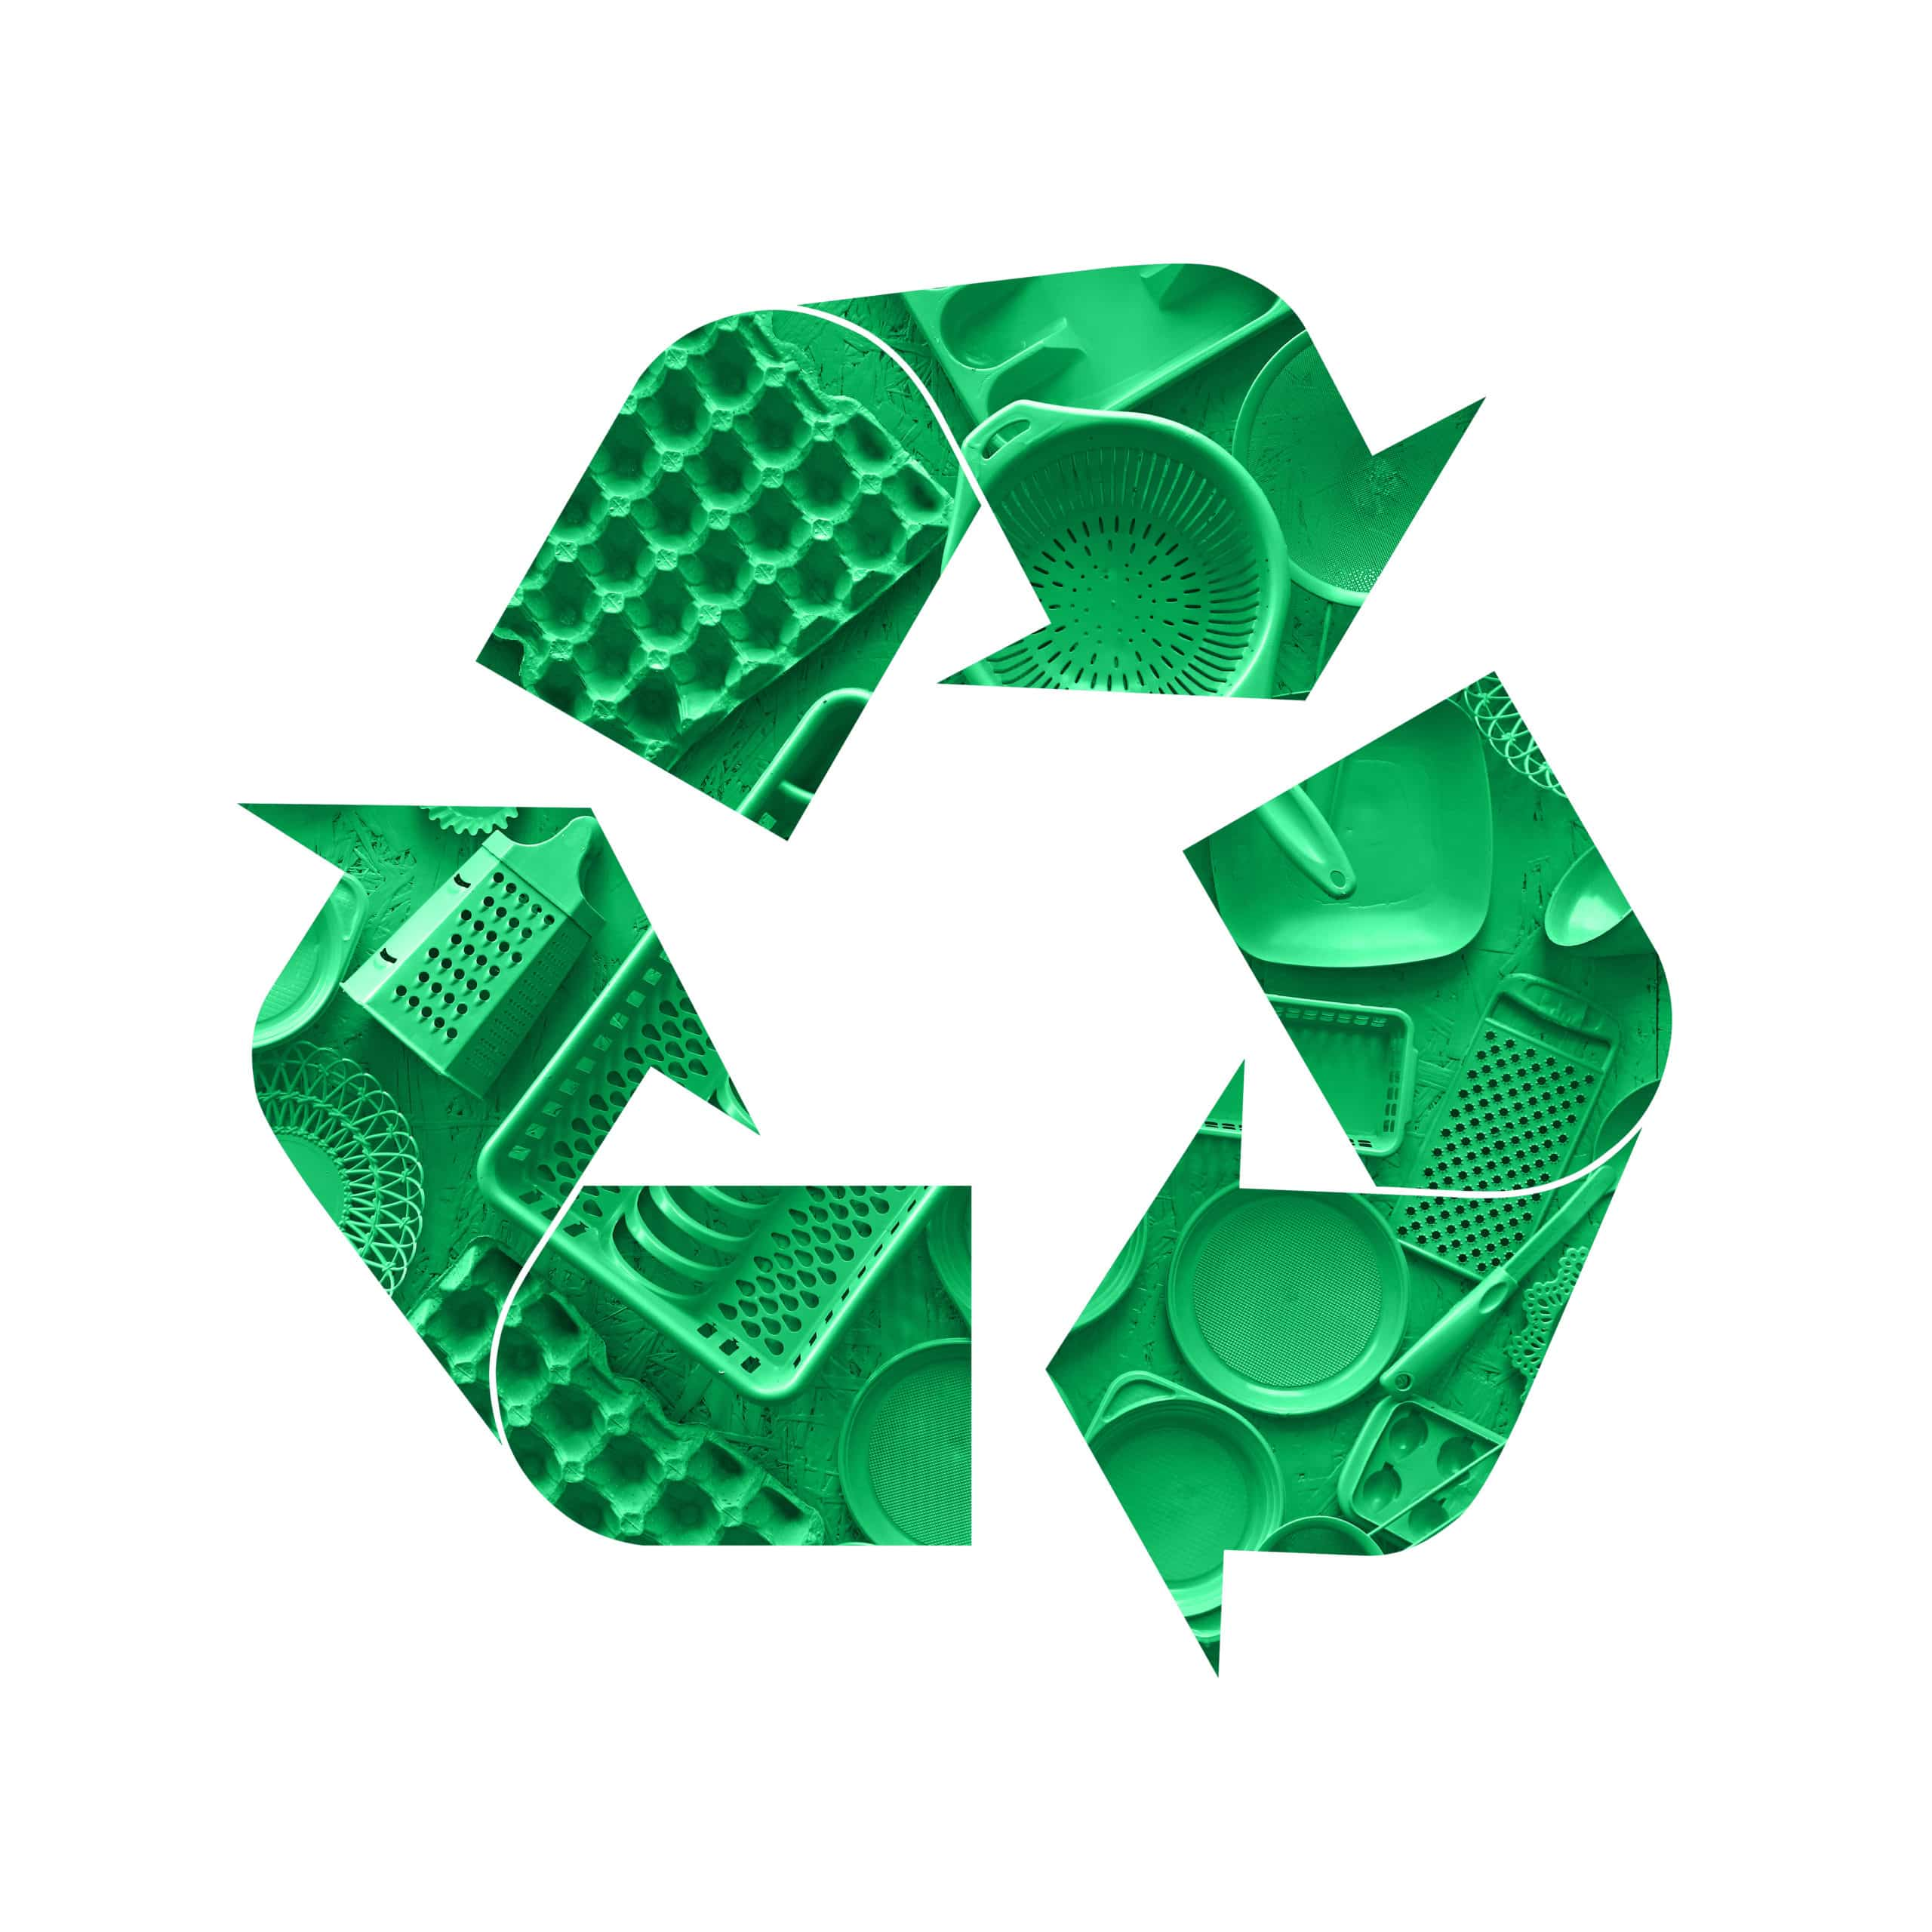 recyclage polystyrene expanse environnement pse hirsch isolation